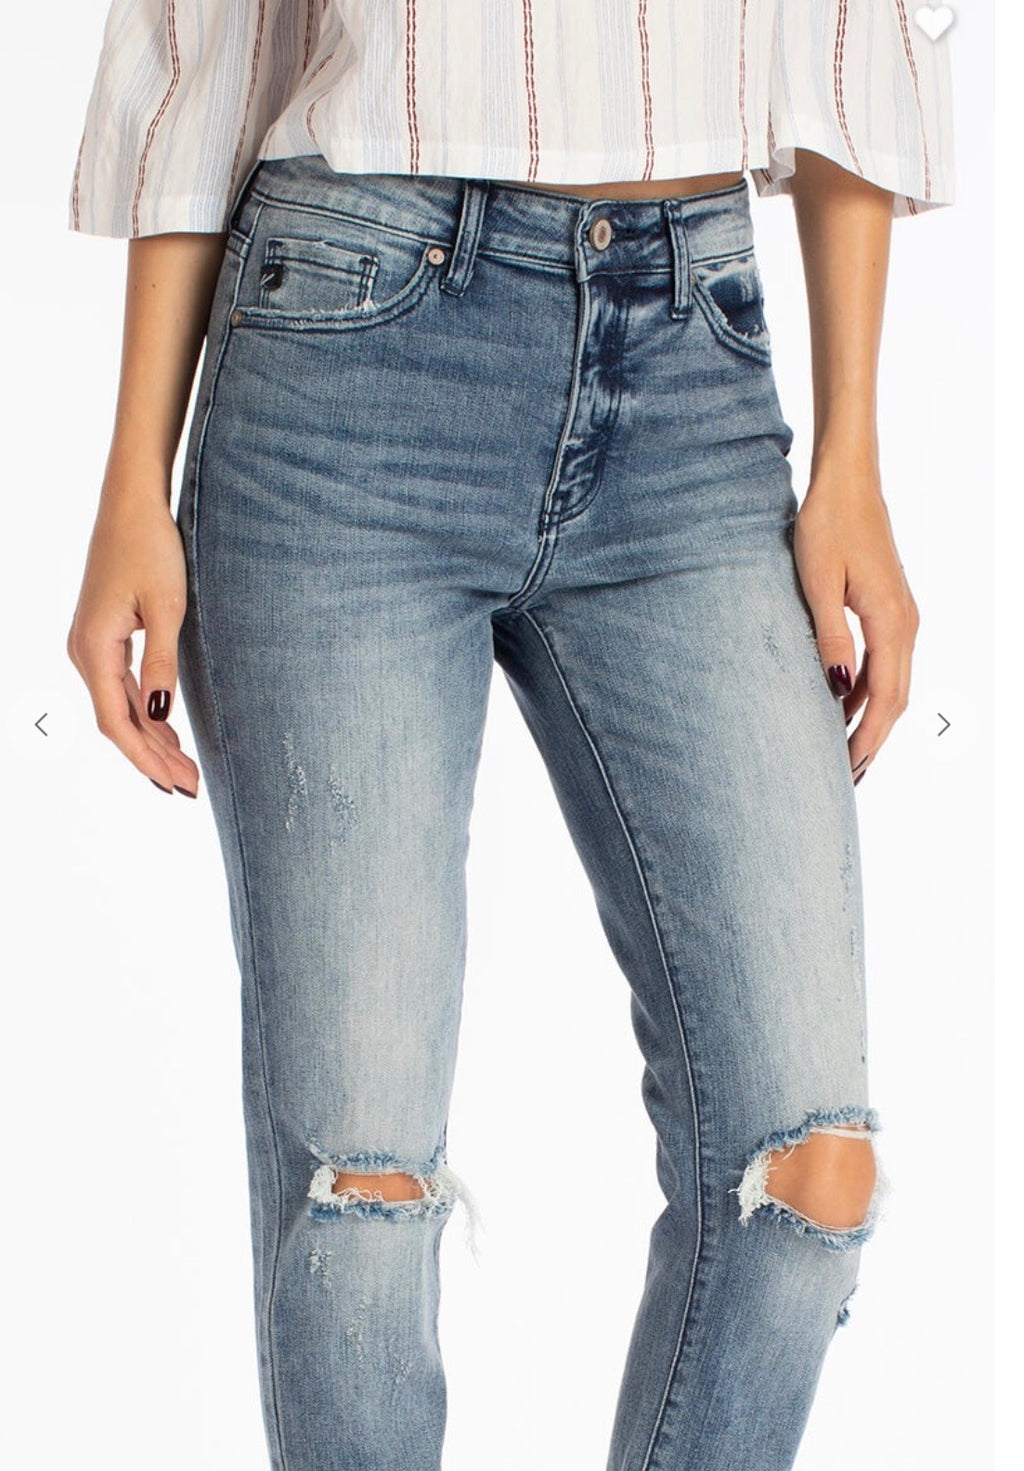 KanCan8356M High Rise Hem Detail Mom Jeans